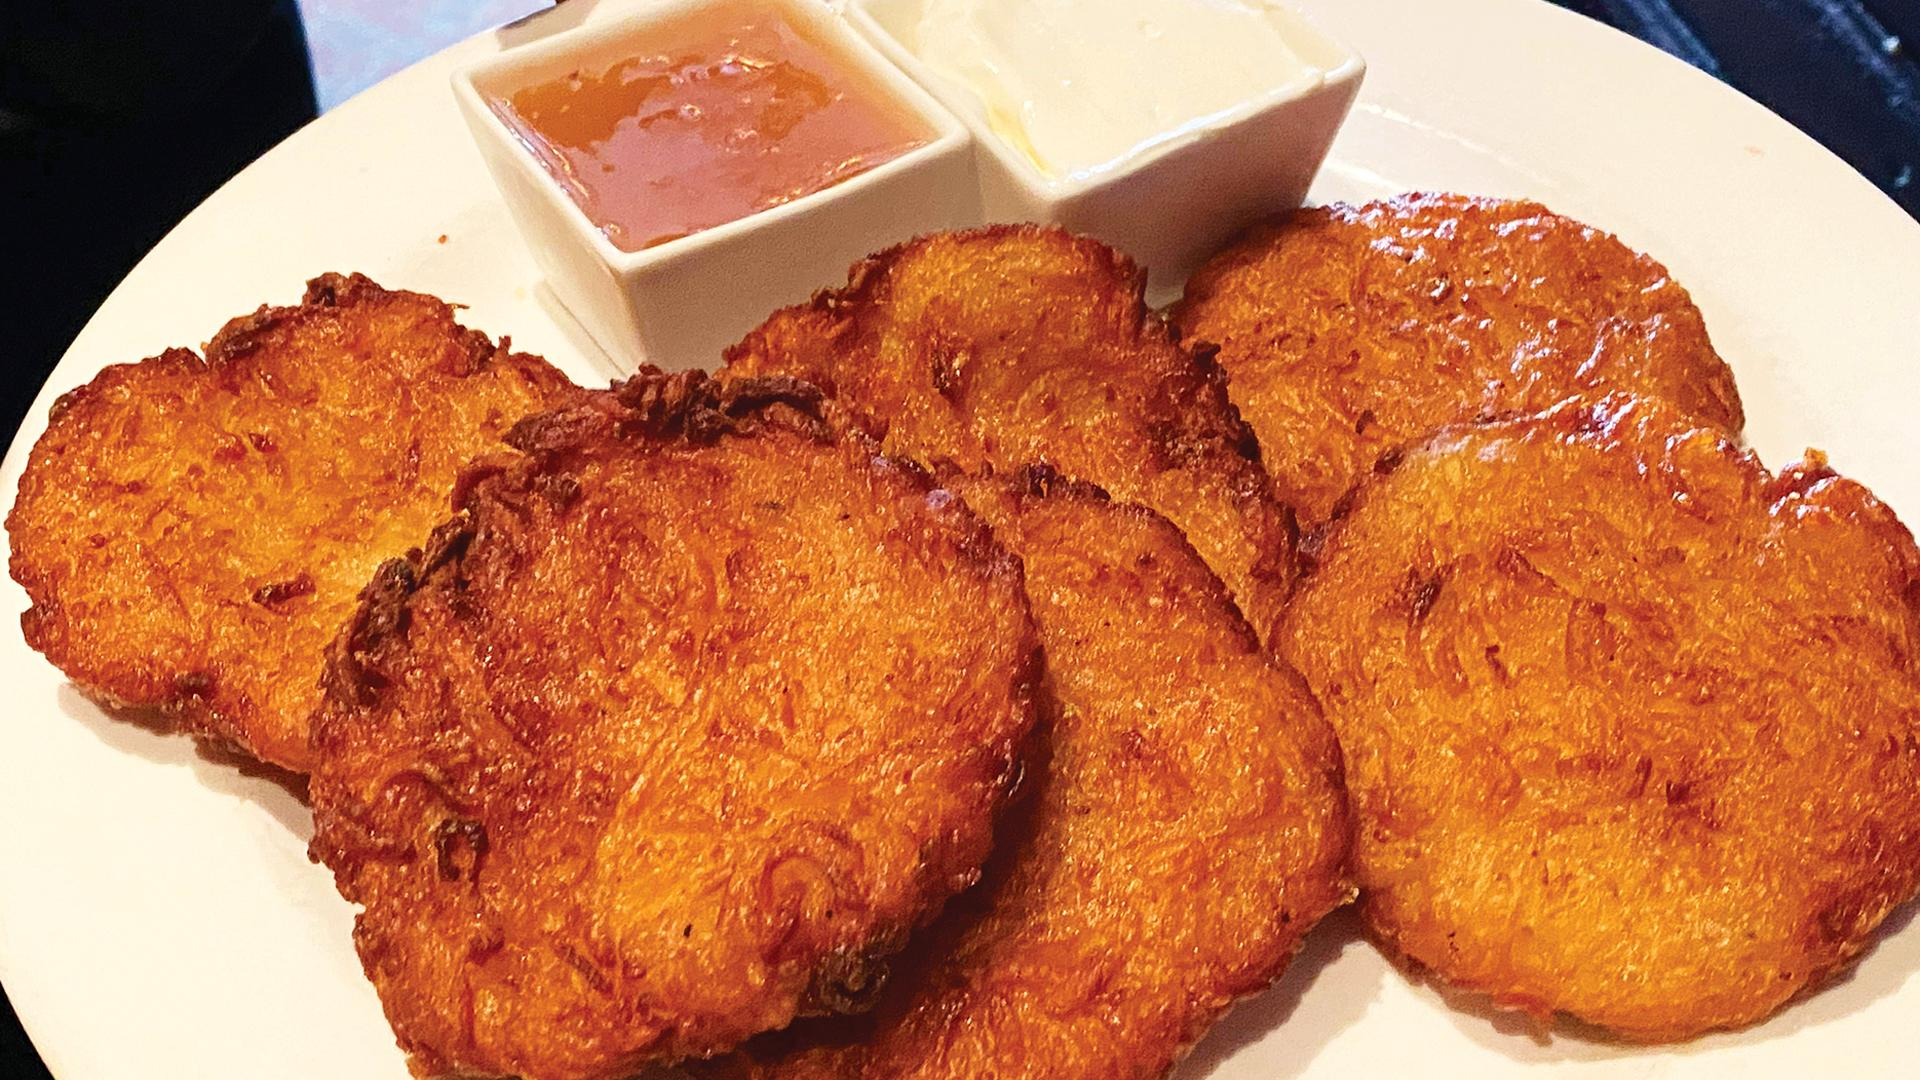 Toronto's best latkes | A plate of latkes with dips from Free Times Café